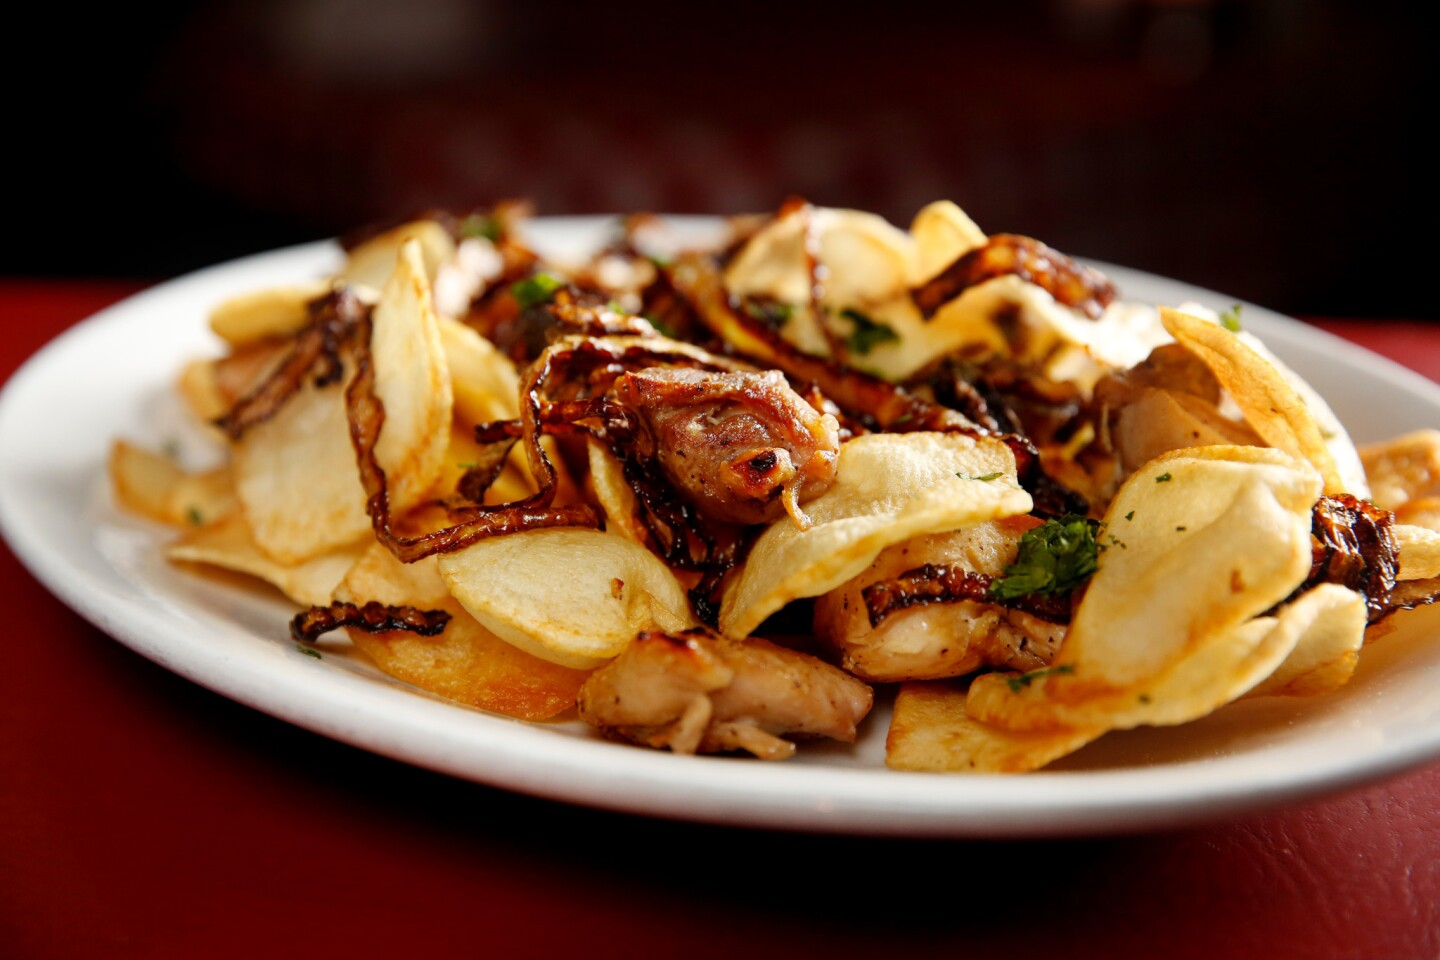 A lot of the dishes at Dan Tana's are named after people. The late Hollywood producer Sidney Beckerman's moniker is attached to this assemblage of freshly made potato chips, tender onions and garlic, as well as to a version in which all of this accompanies baked dark-meat chicken.